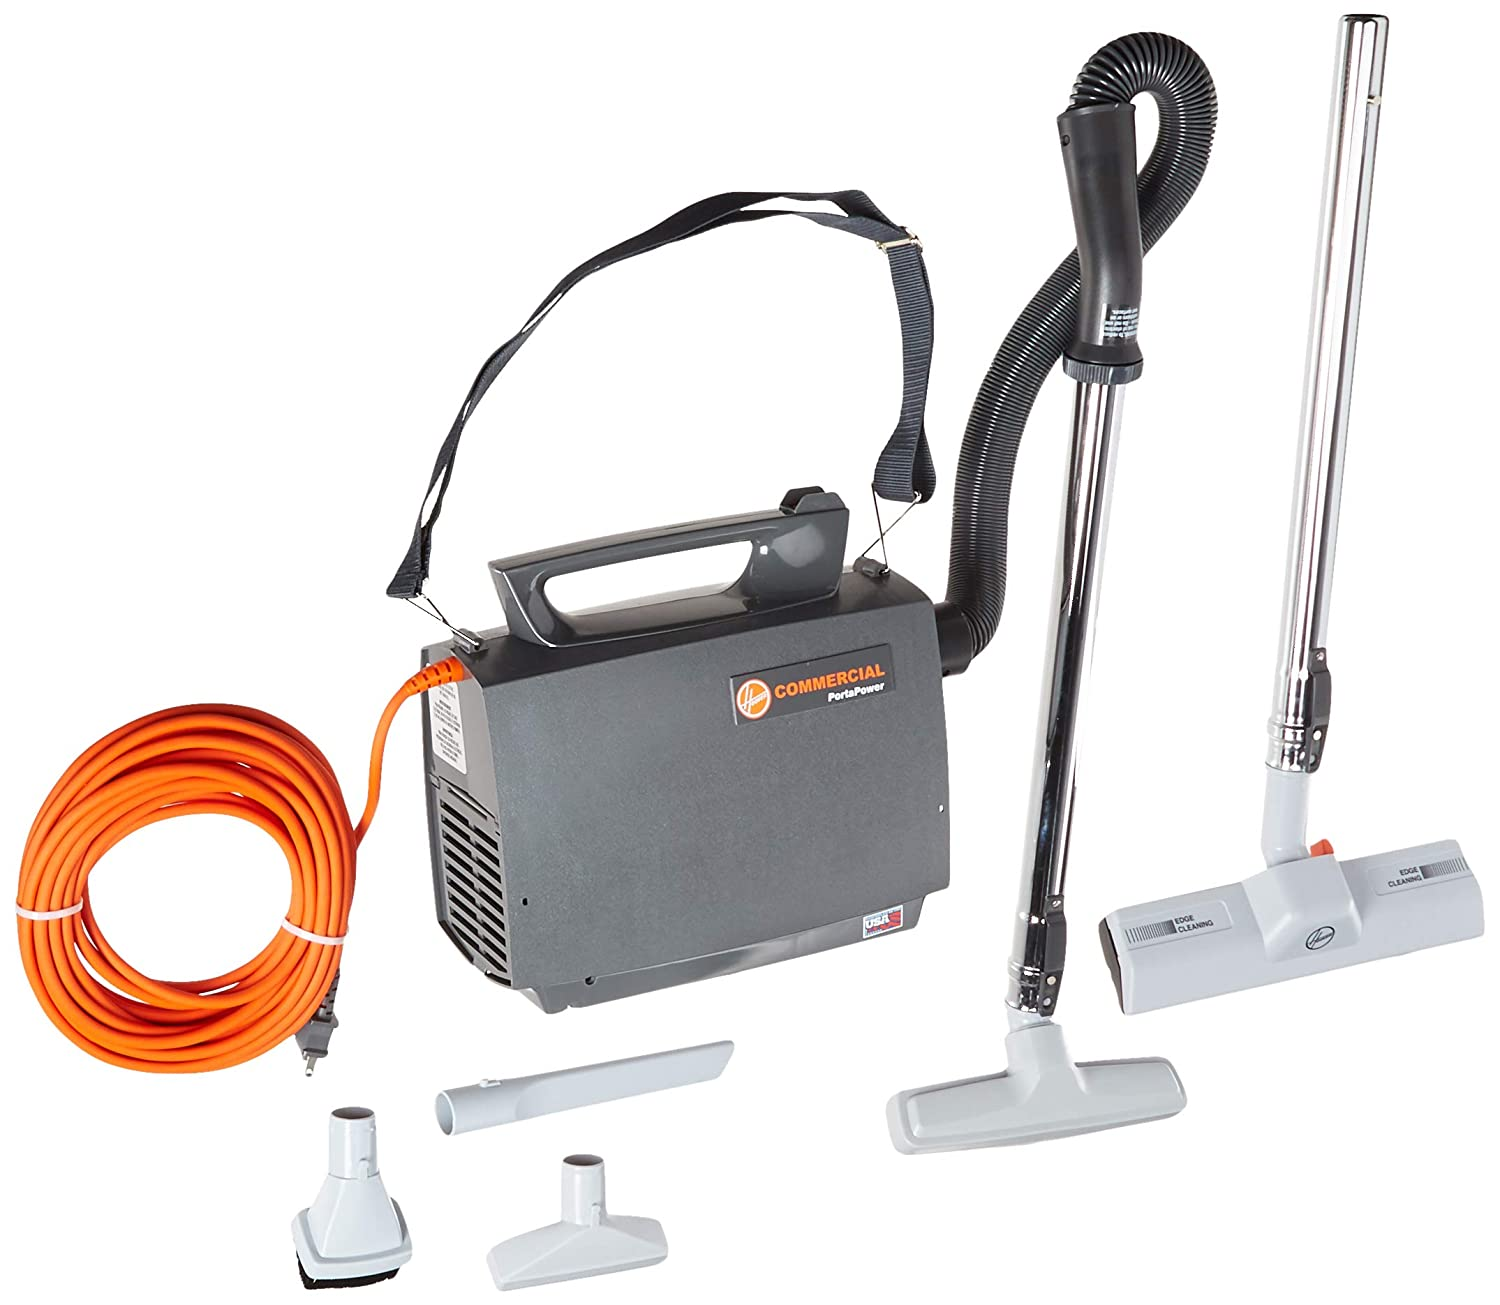 Hoover CH30000 PortaPower Lightweight Commercial Canister Vacuum, Orange